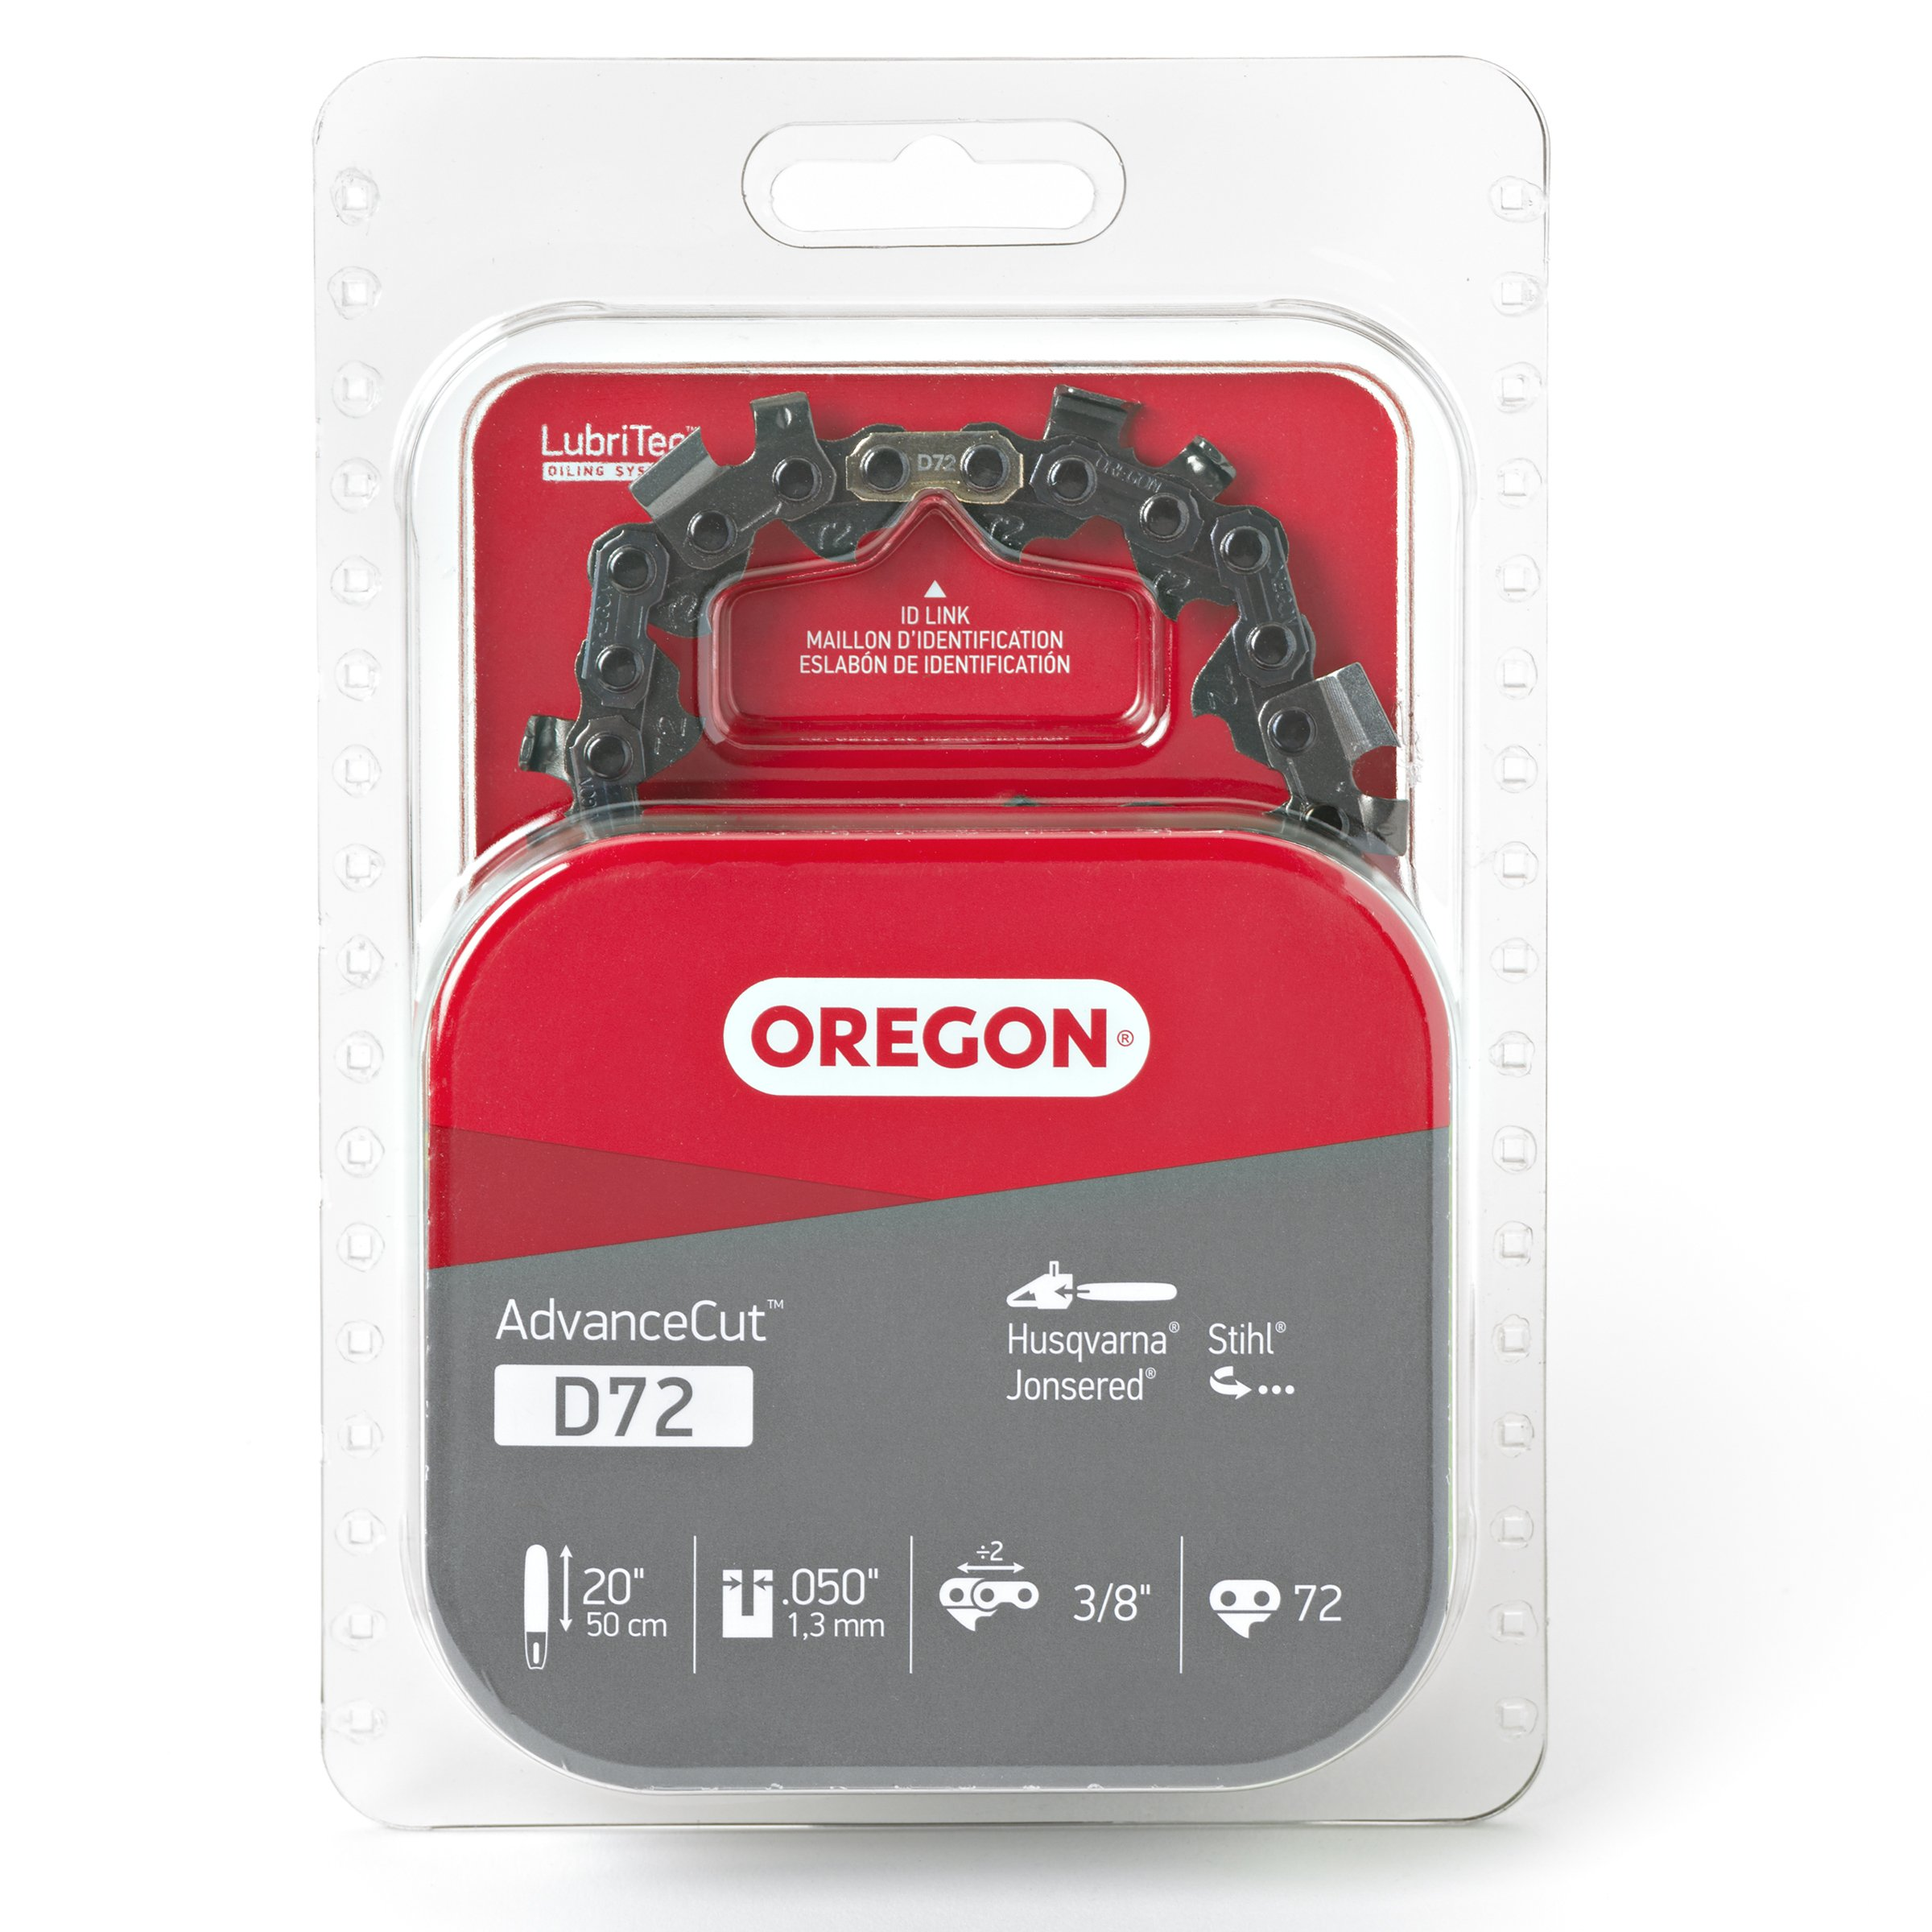 Oregon D72 AdvanceCut 20-Inch Chainsaw Chain, Fits Husqvarna, Remington, Makita, Stihl and others by Oregon